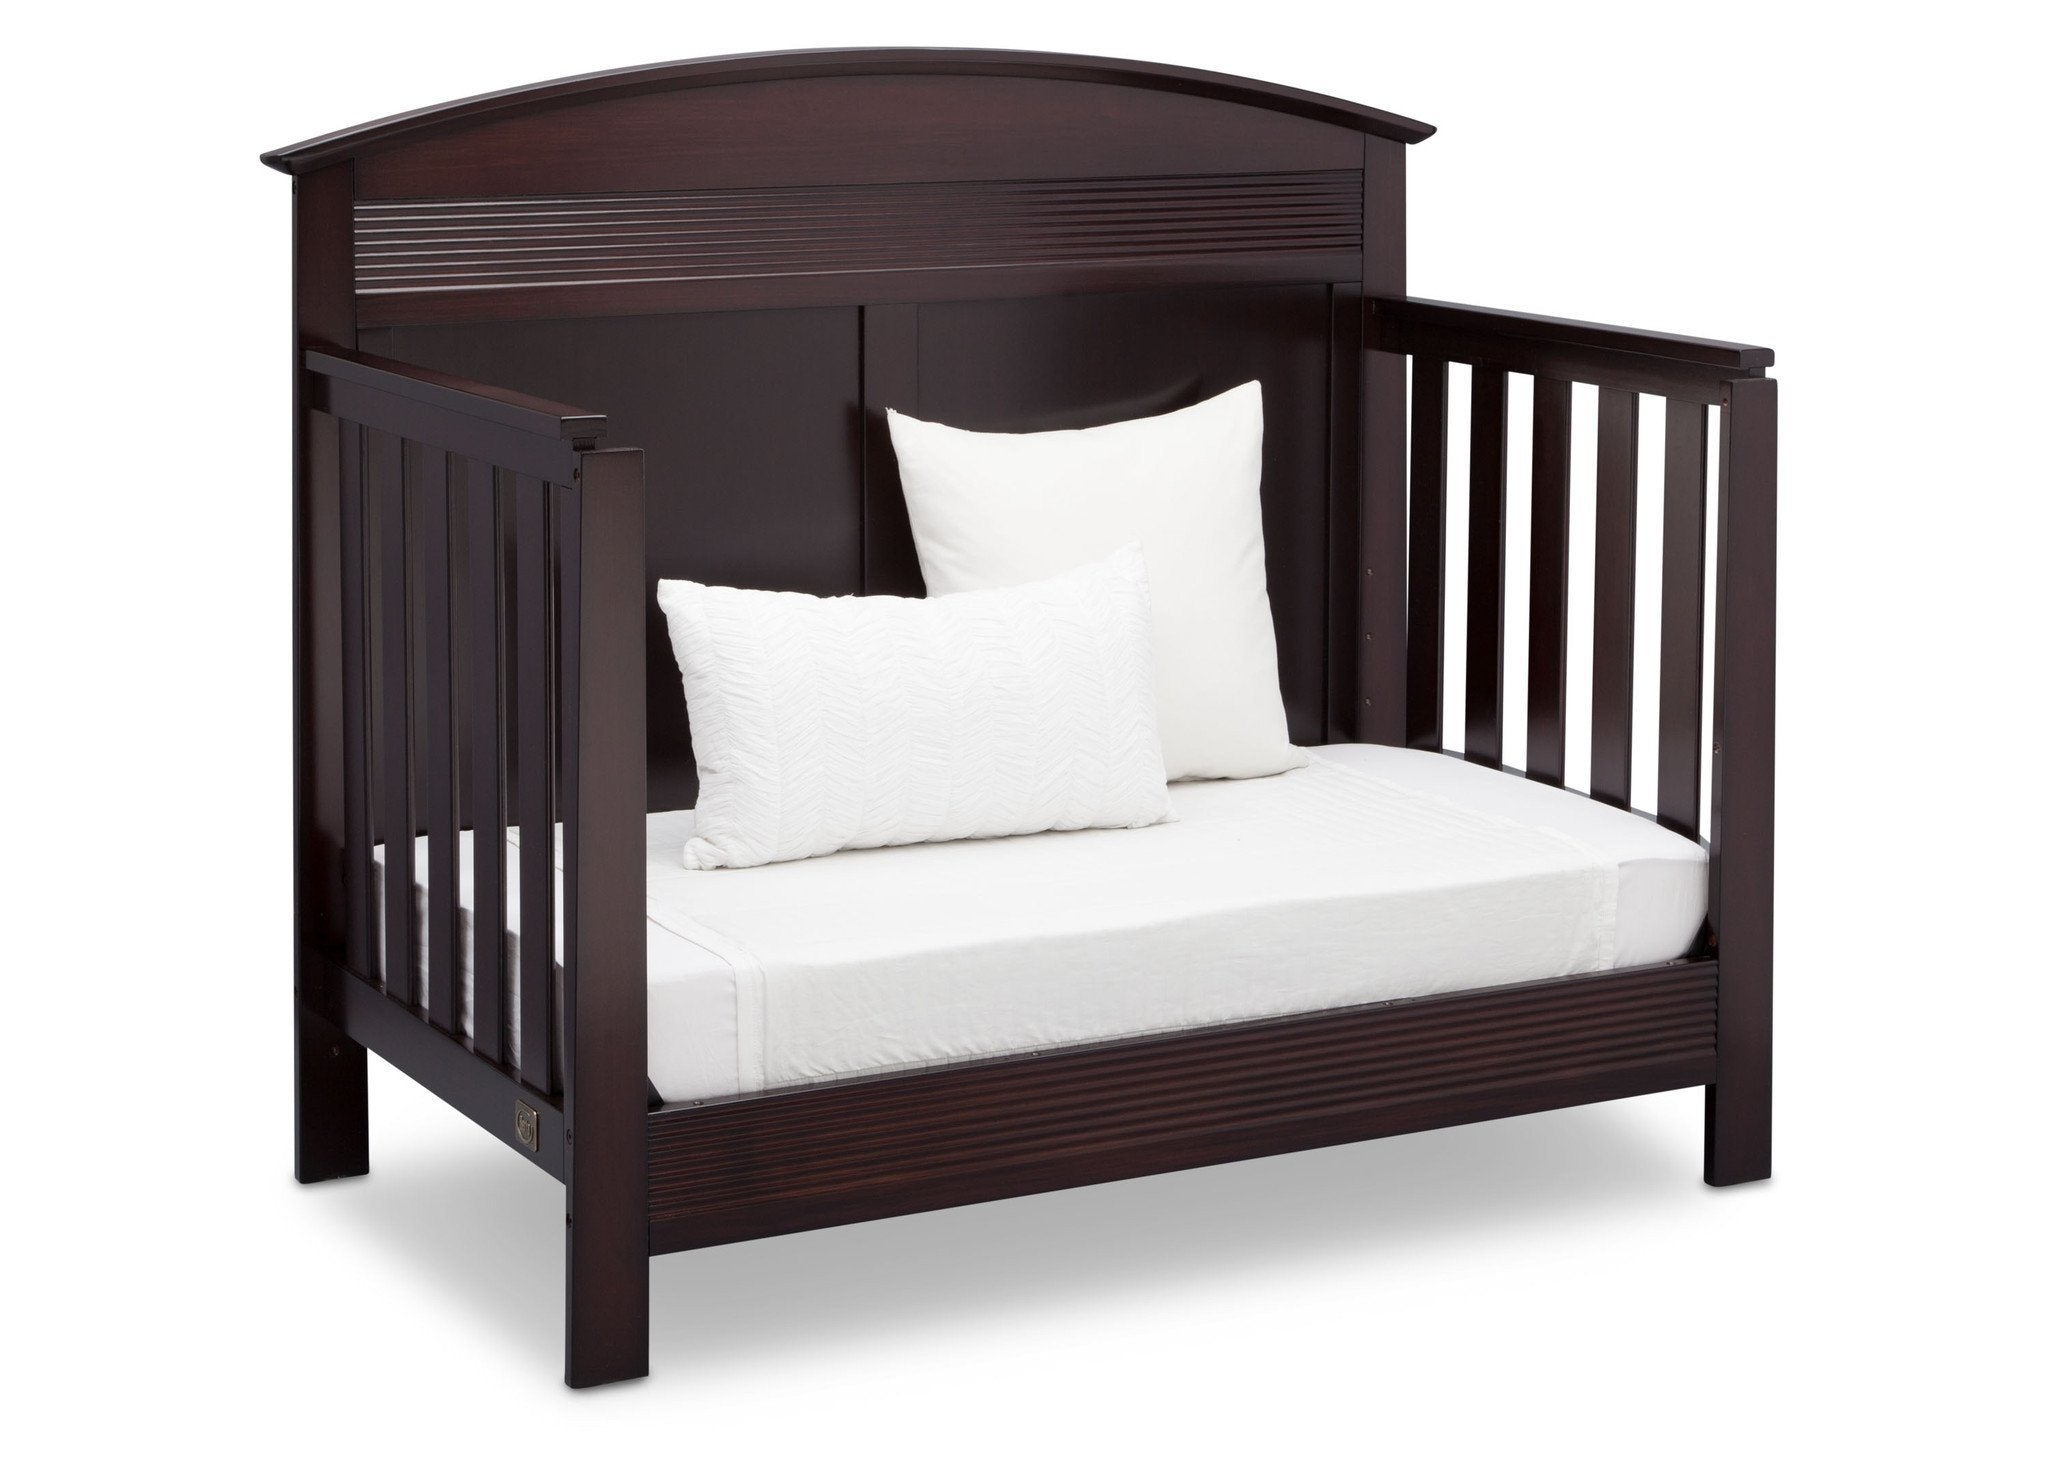 Serta Dark Chocolate (207) Ashland 4-in-1 Convertible Crib, Right Day Bed View c4c